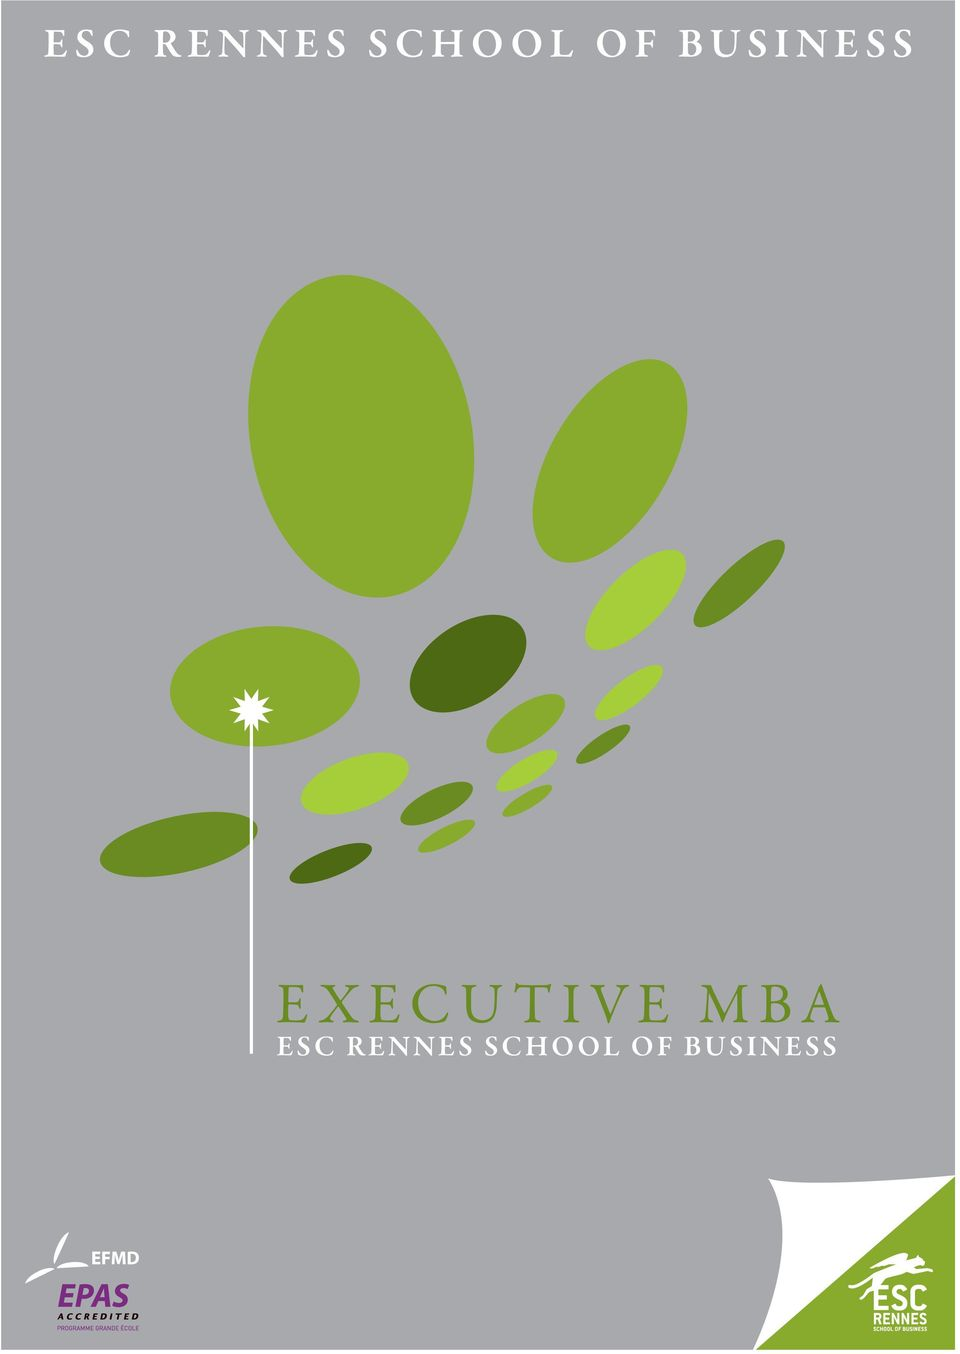 EXECUTIVE MBA  OF